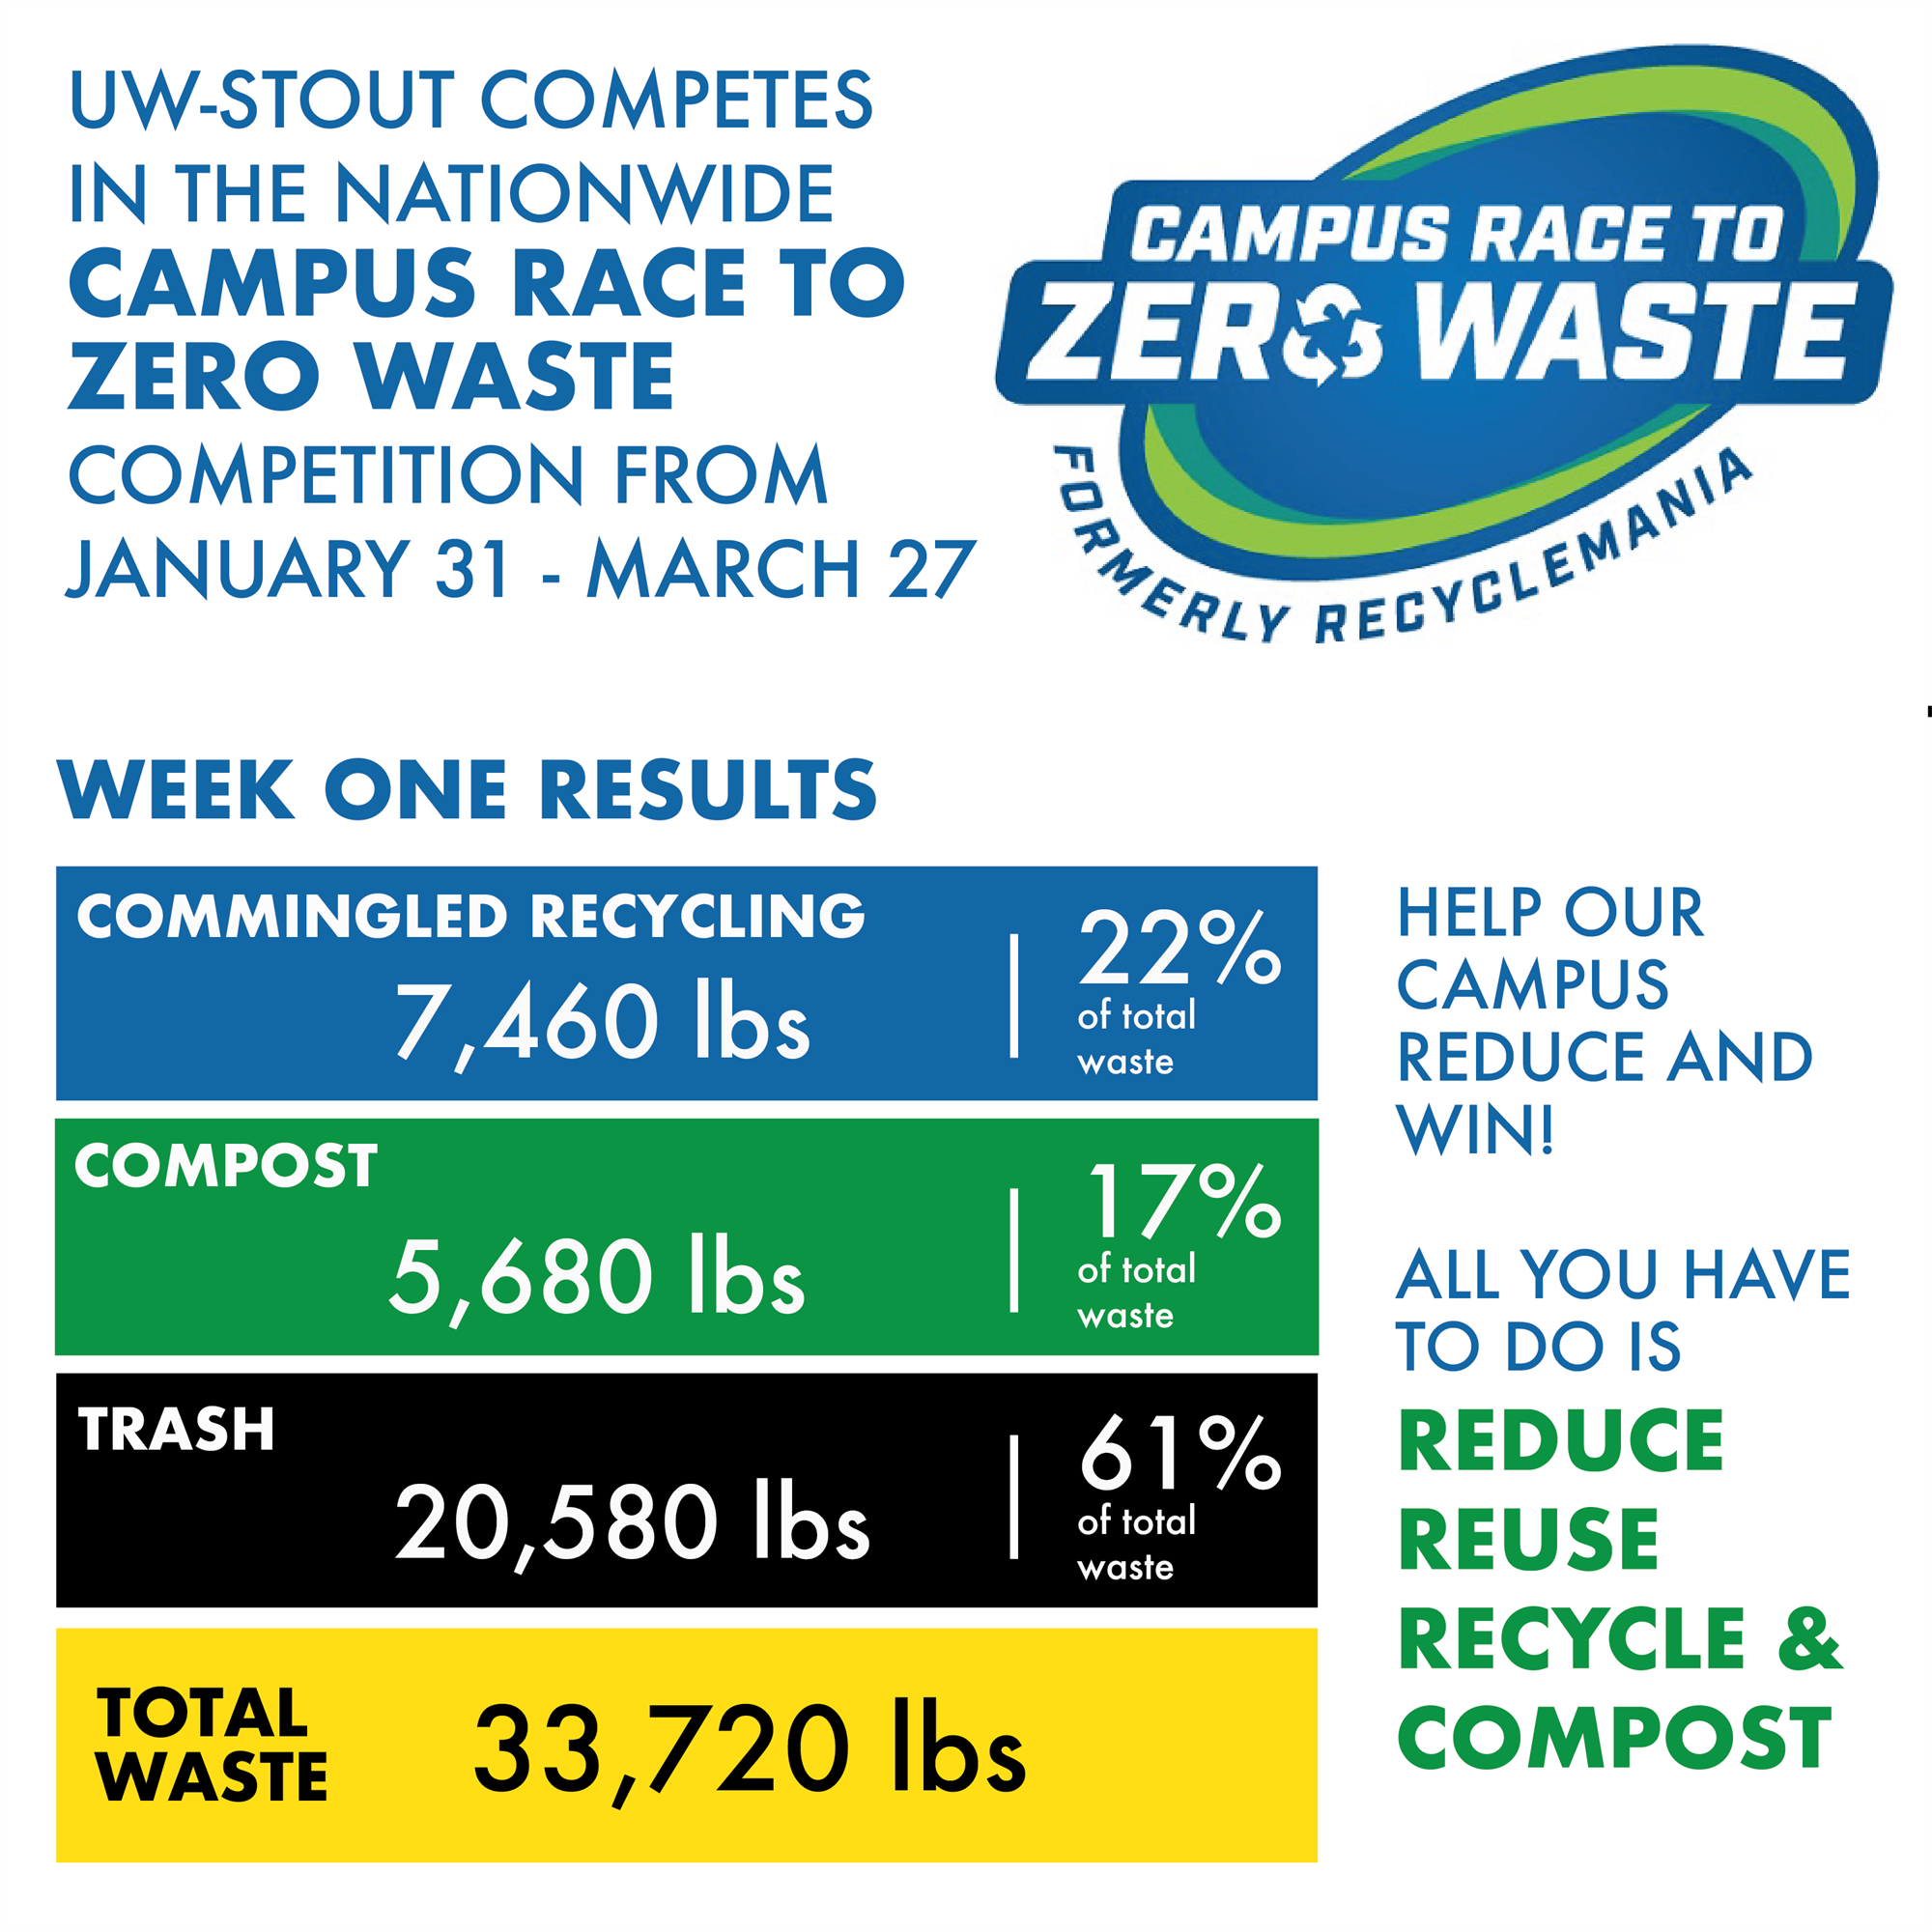 Camus Race to Zero Waste - Week One Results